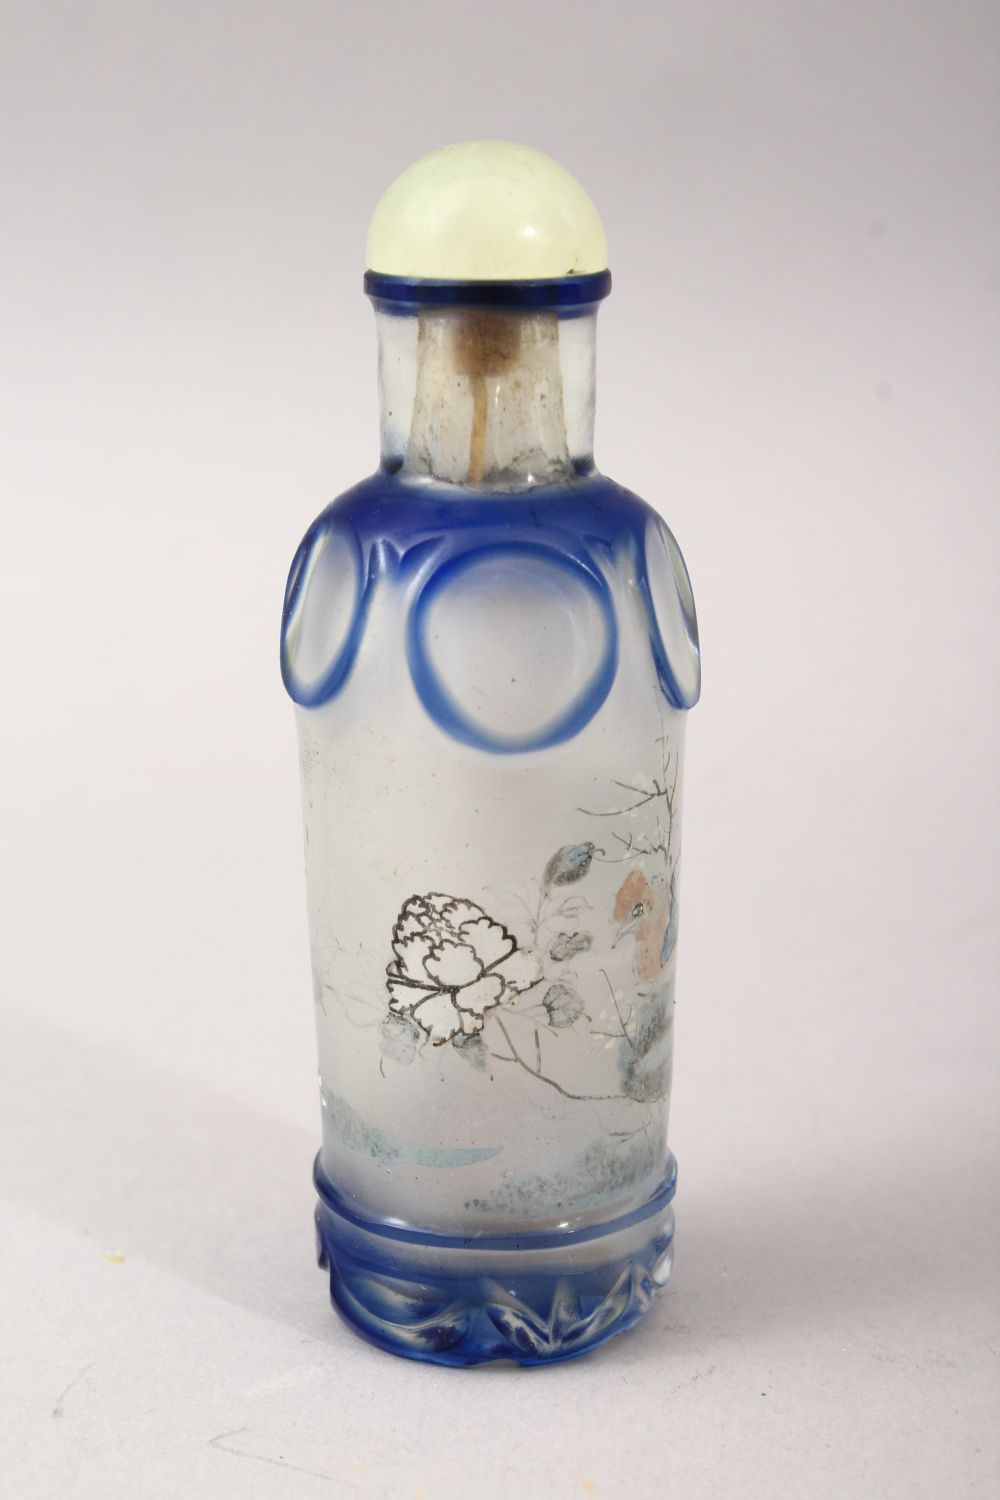 A GOOD 19TH / 20TH CENTURY CHINESE REVERSE PAINTED GLASS & OVERLAY SNUFF BOTTLE, - Image 3 of 5